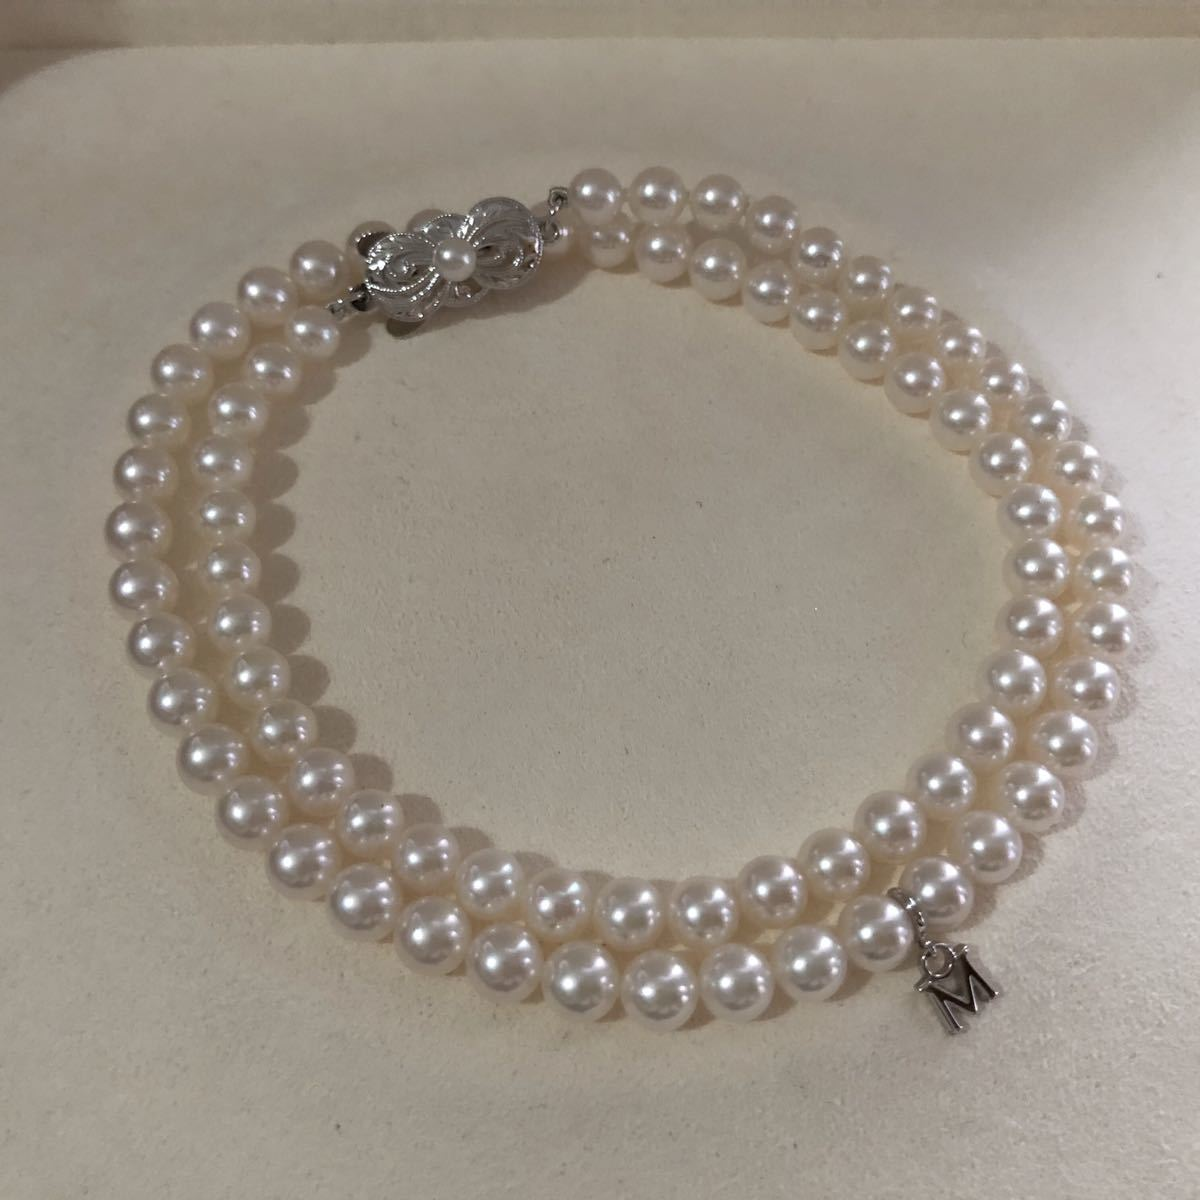 MIKIMOTO ミキモト アコヤパールネックレス SIL 5mm_画像3